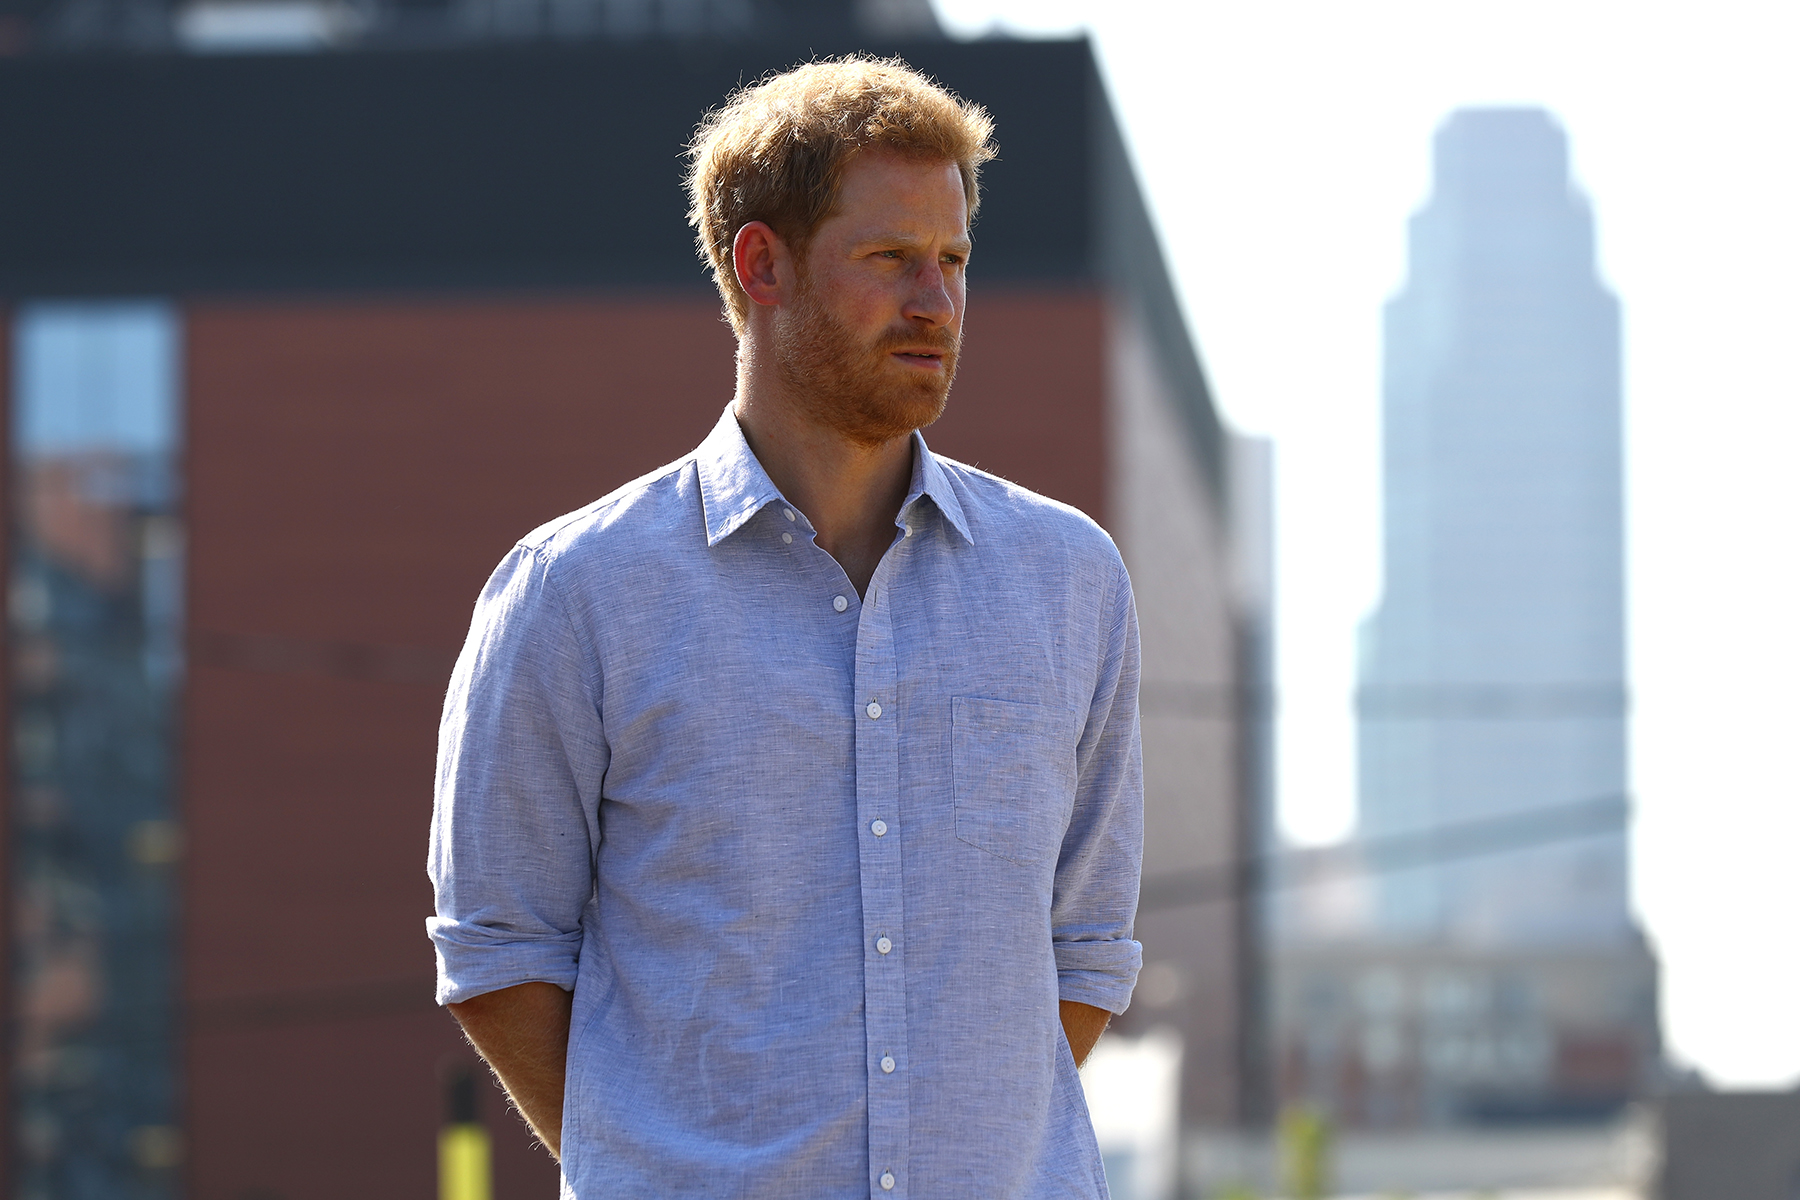 Prince Harry in blue shirt